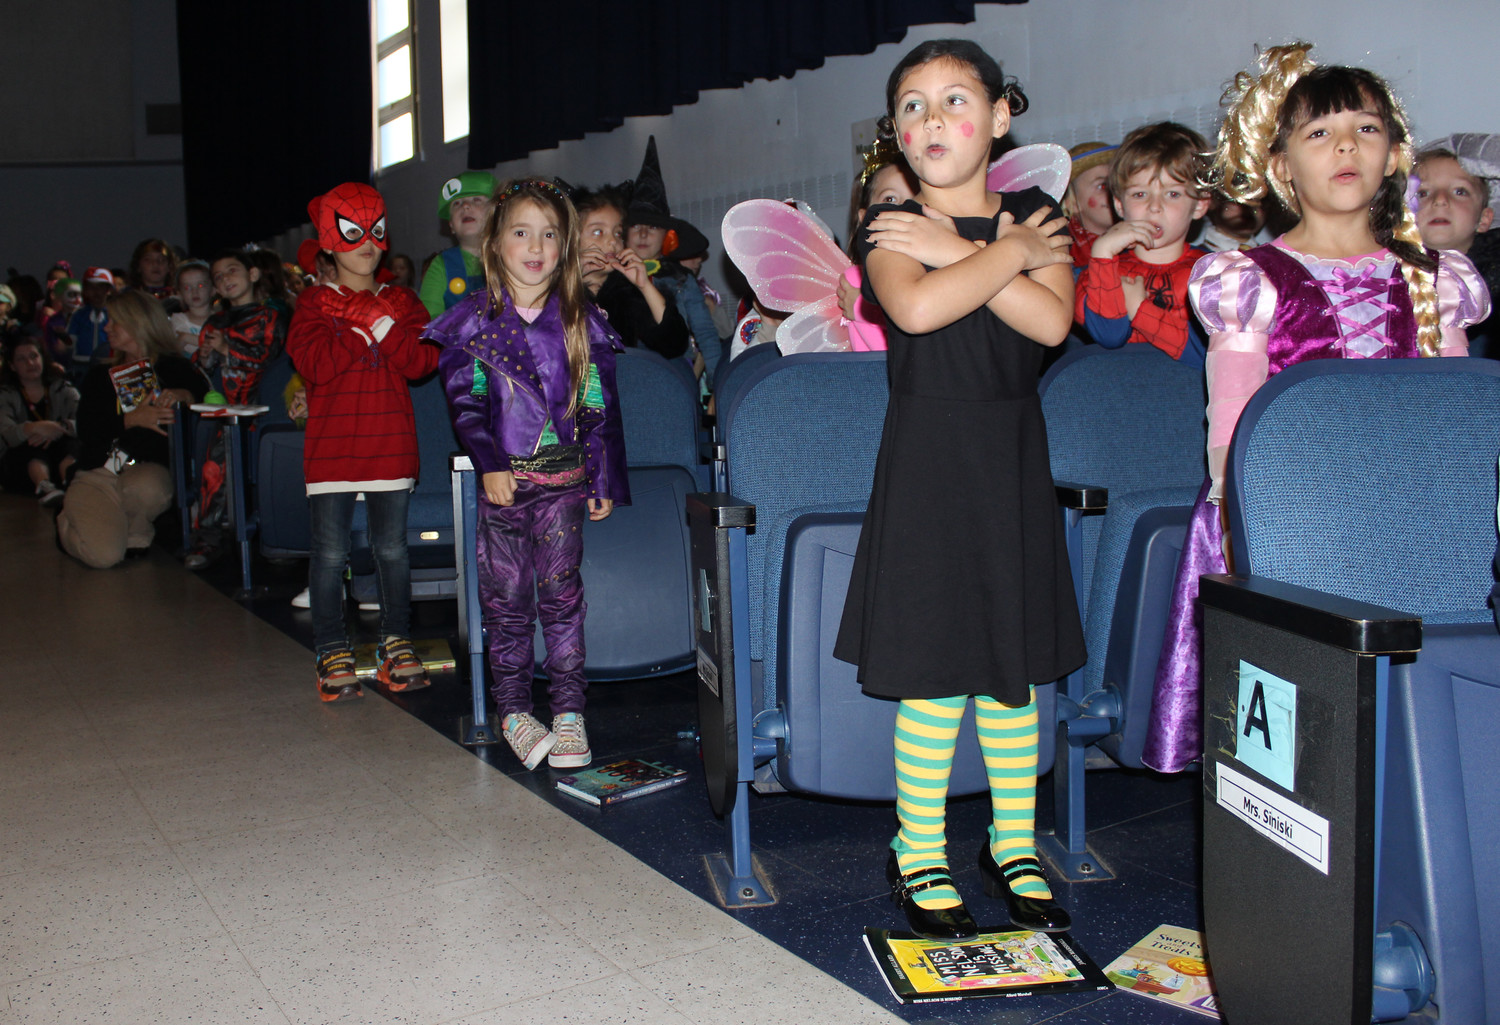 Reinhard students sang various Halloween songs as music teacher Randi Andersen accompanied them on piano.